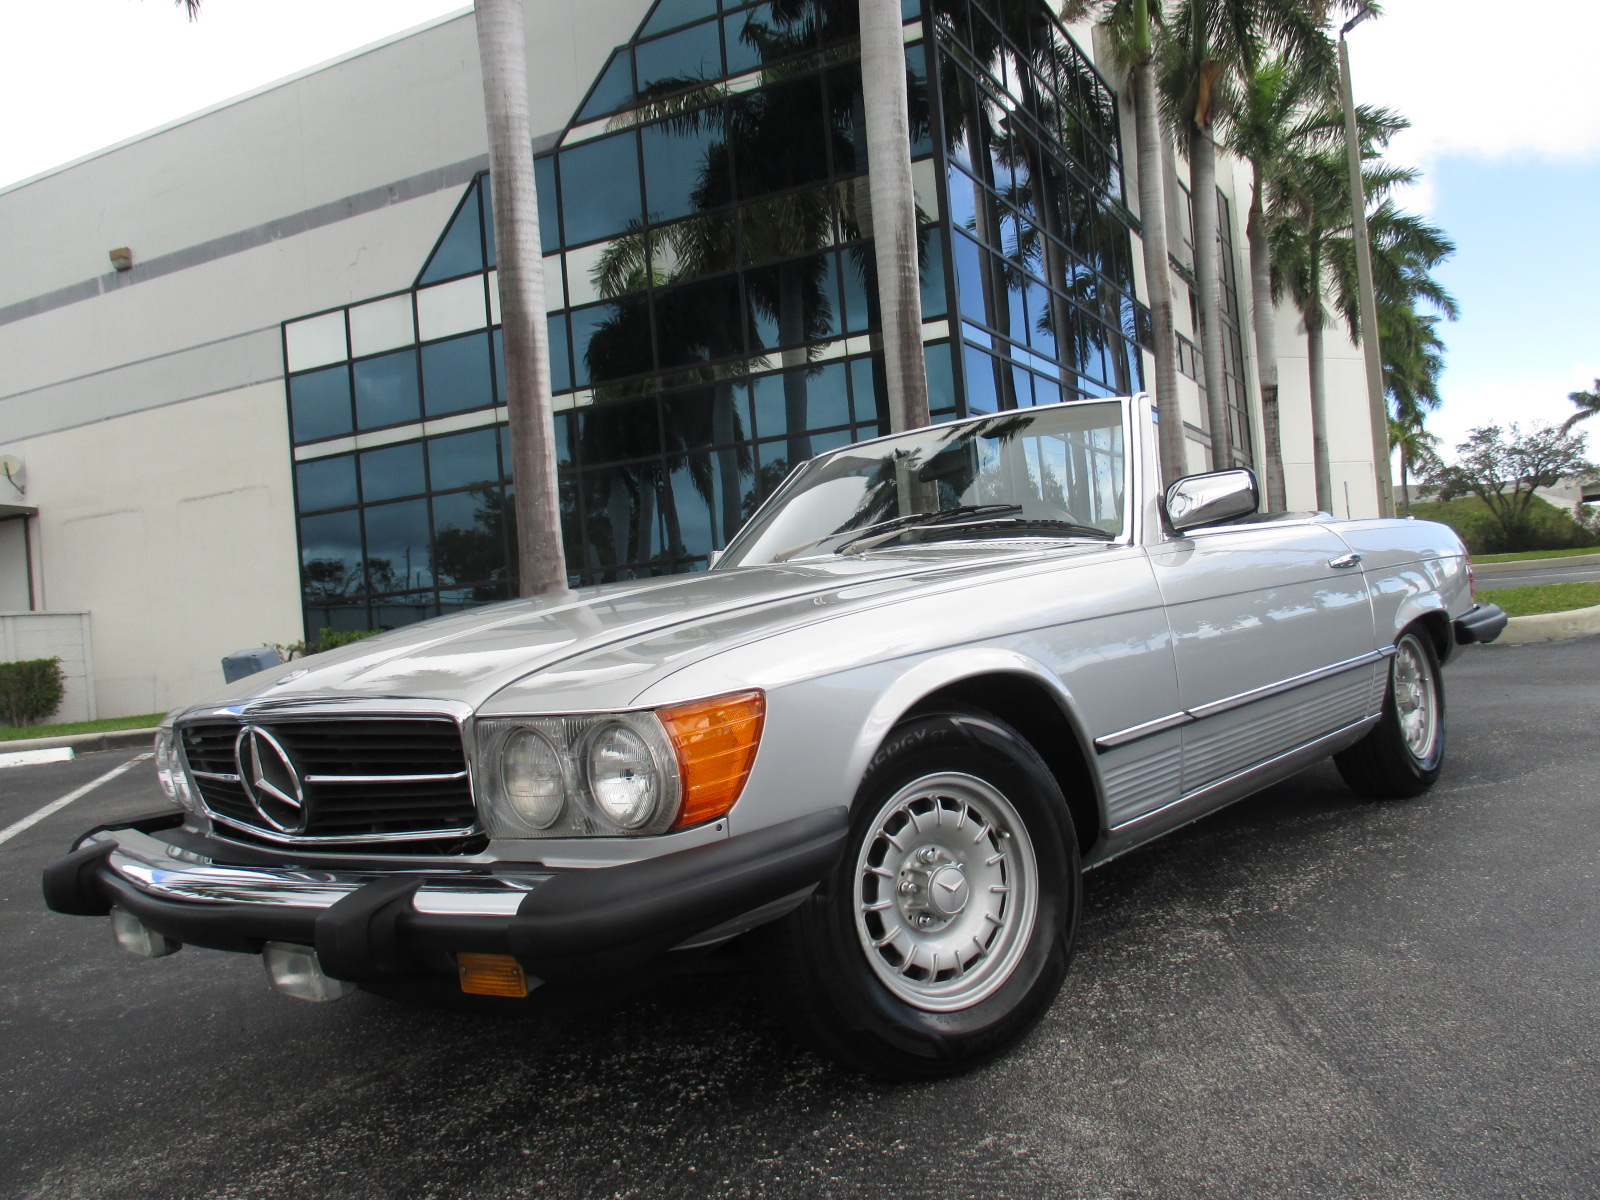 1977 M BENZ 450SL ROADSTER